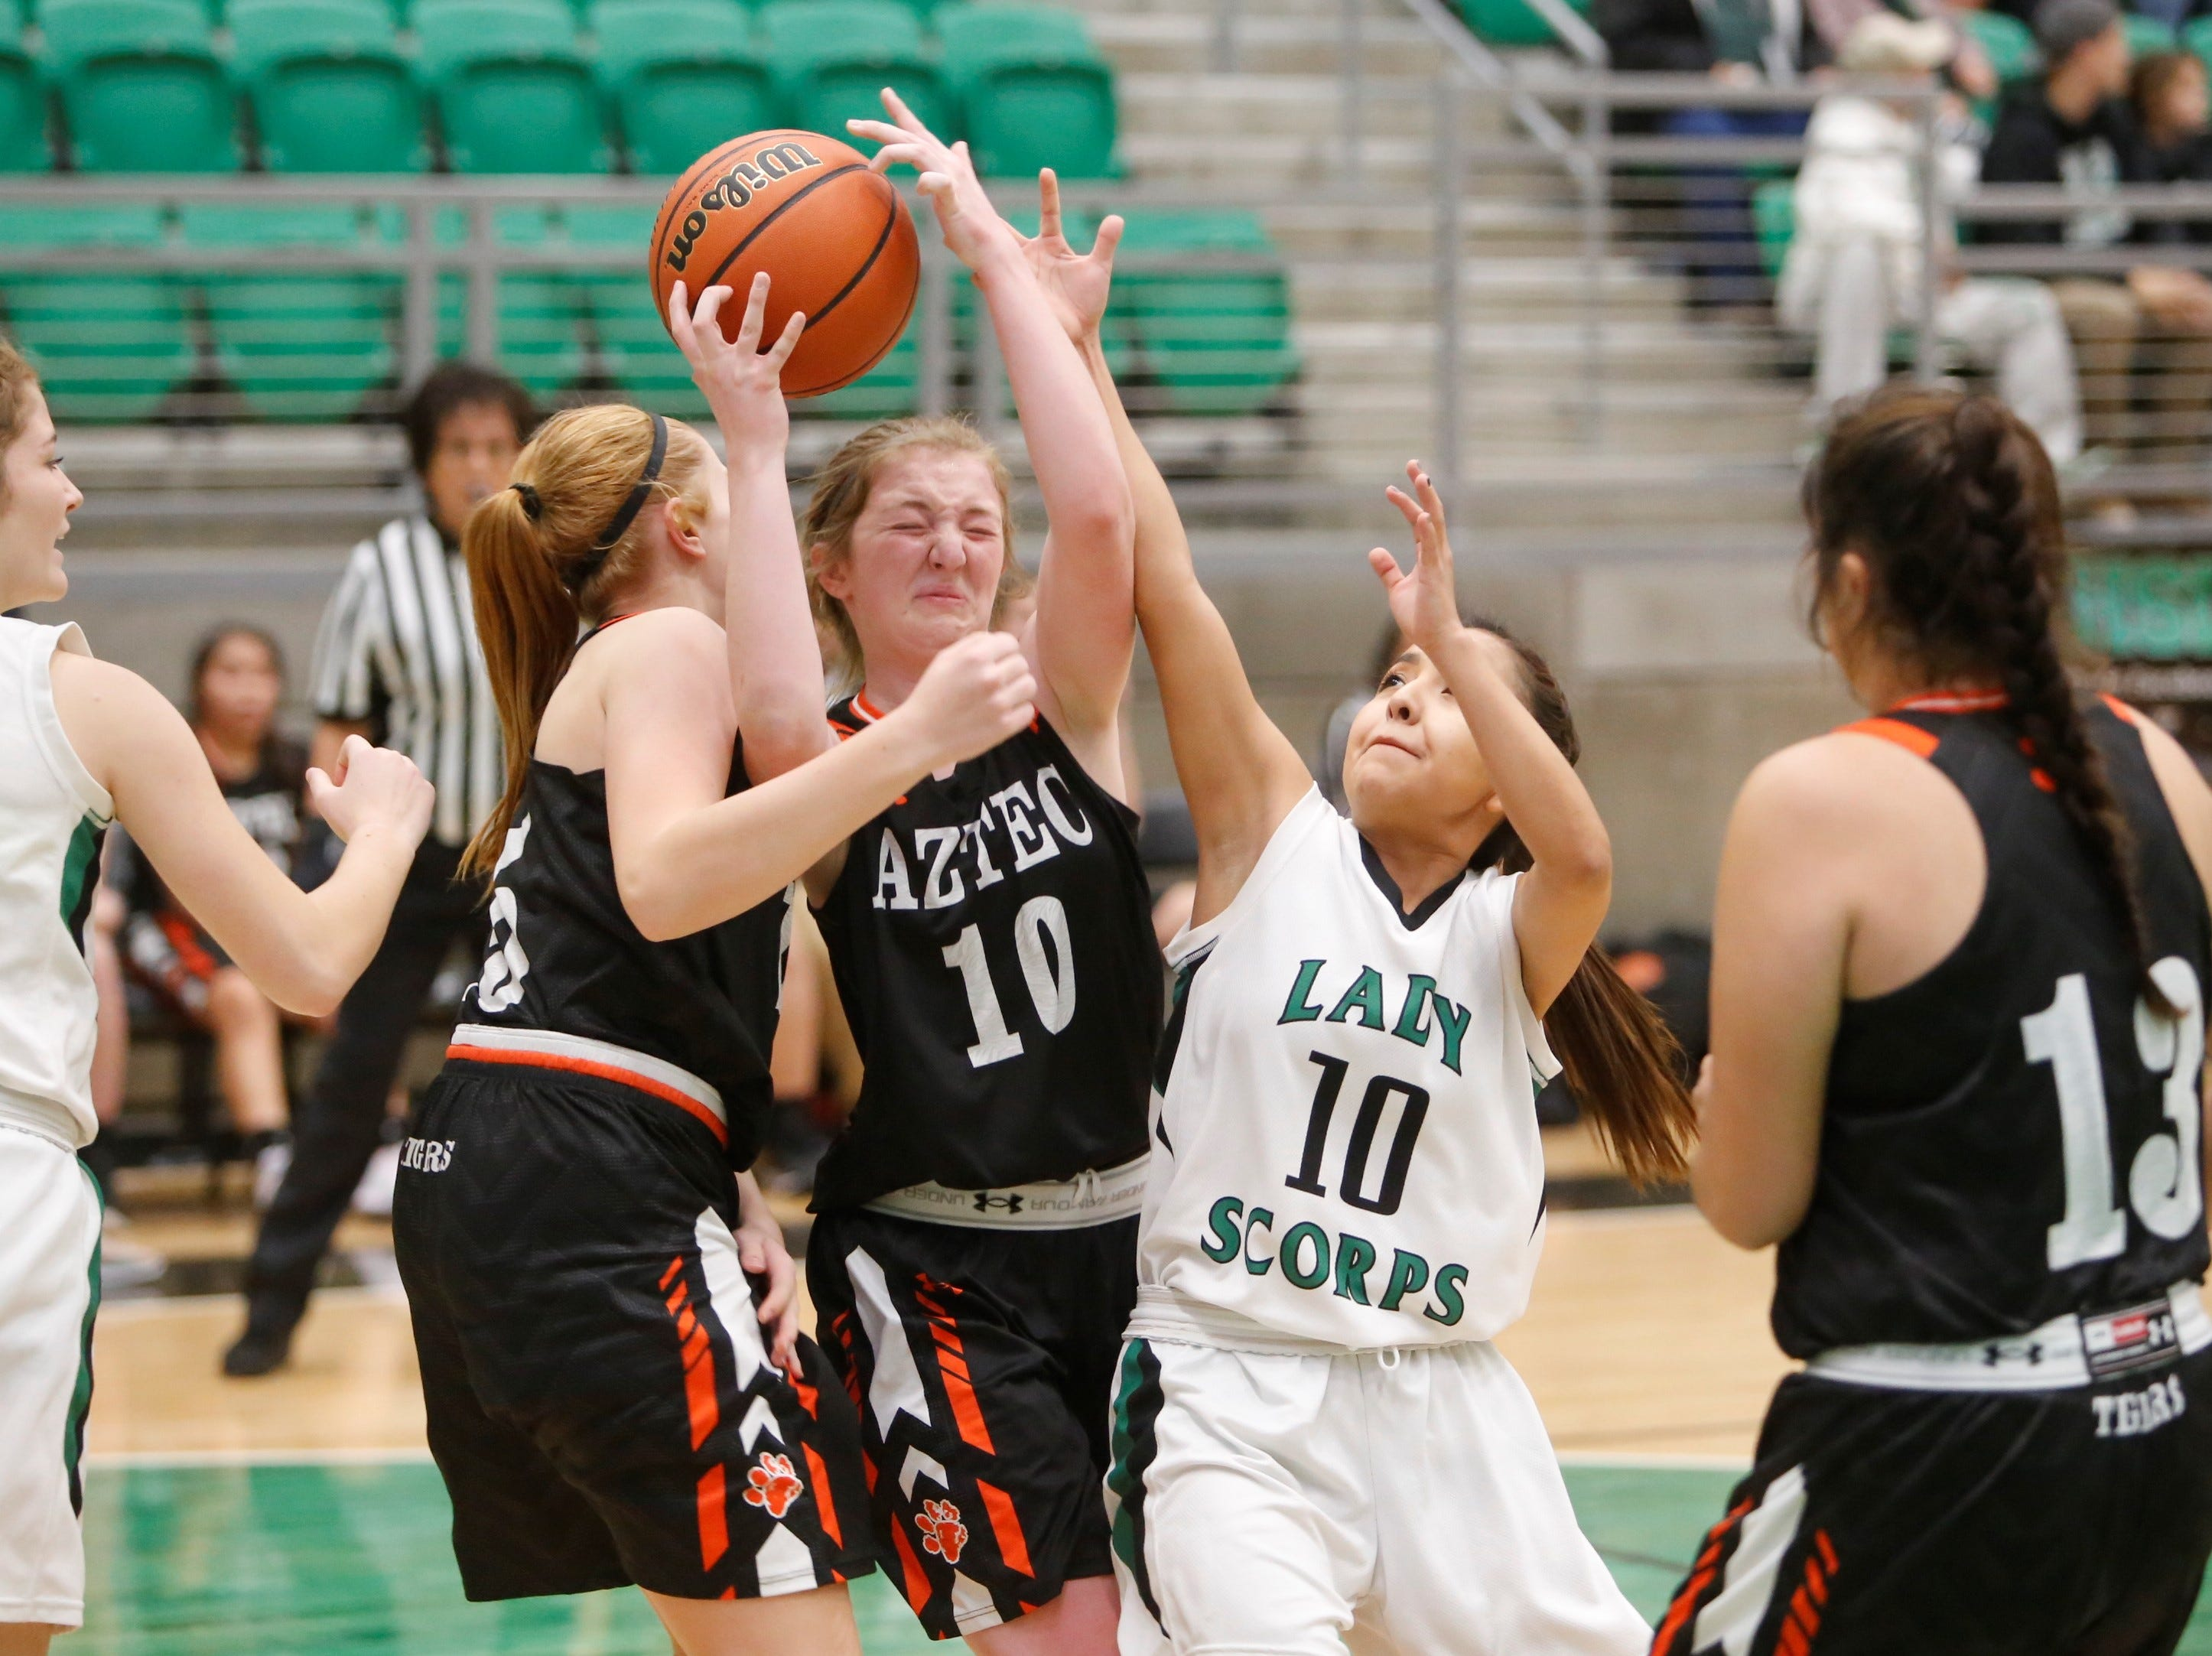 Aztec's Jessi Gillentine (10) pulls down the ball for a defensive rebound against Farmington's Natiana Arviso (10) during Tuesday's game at Scorpion Arena.